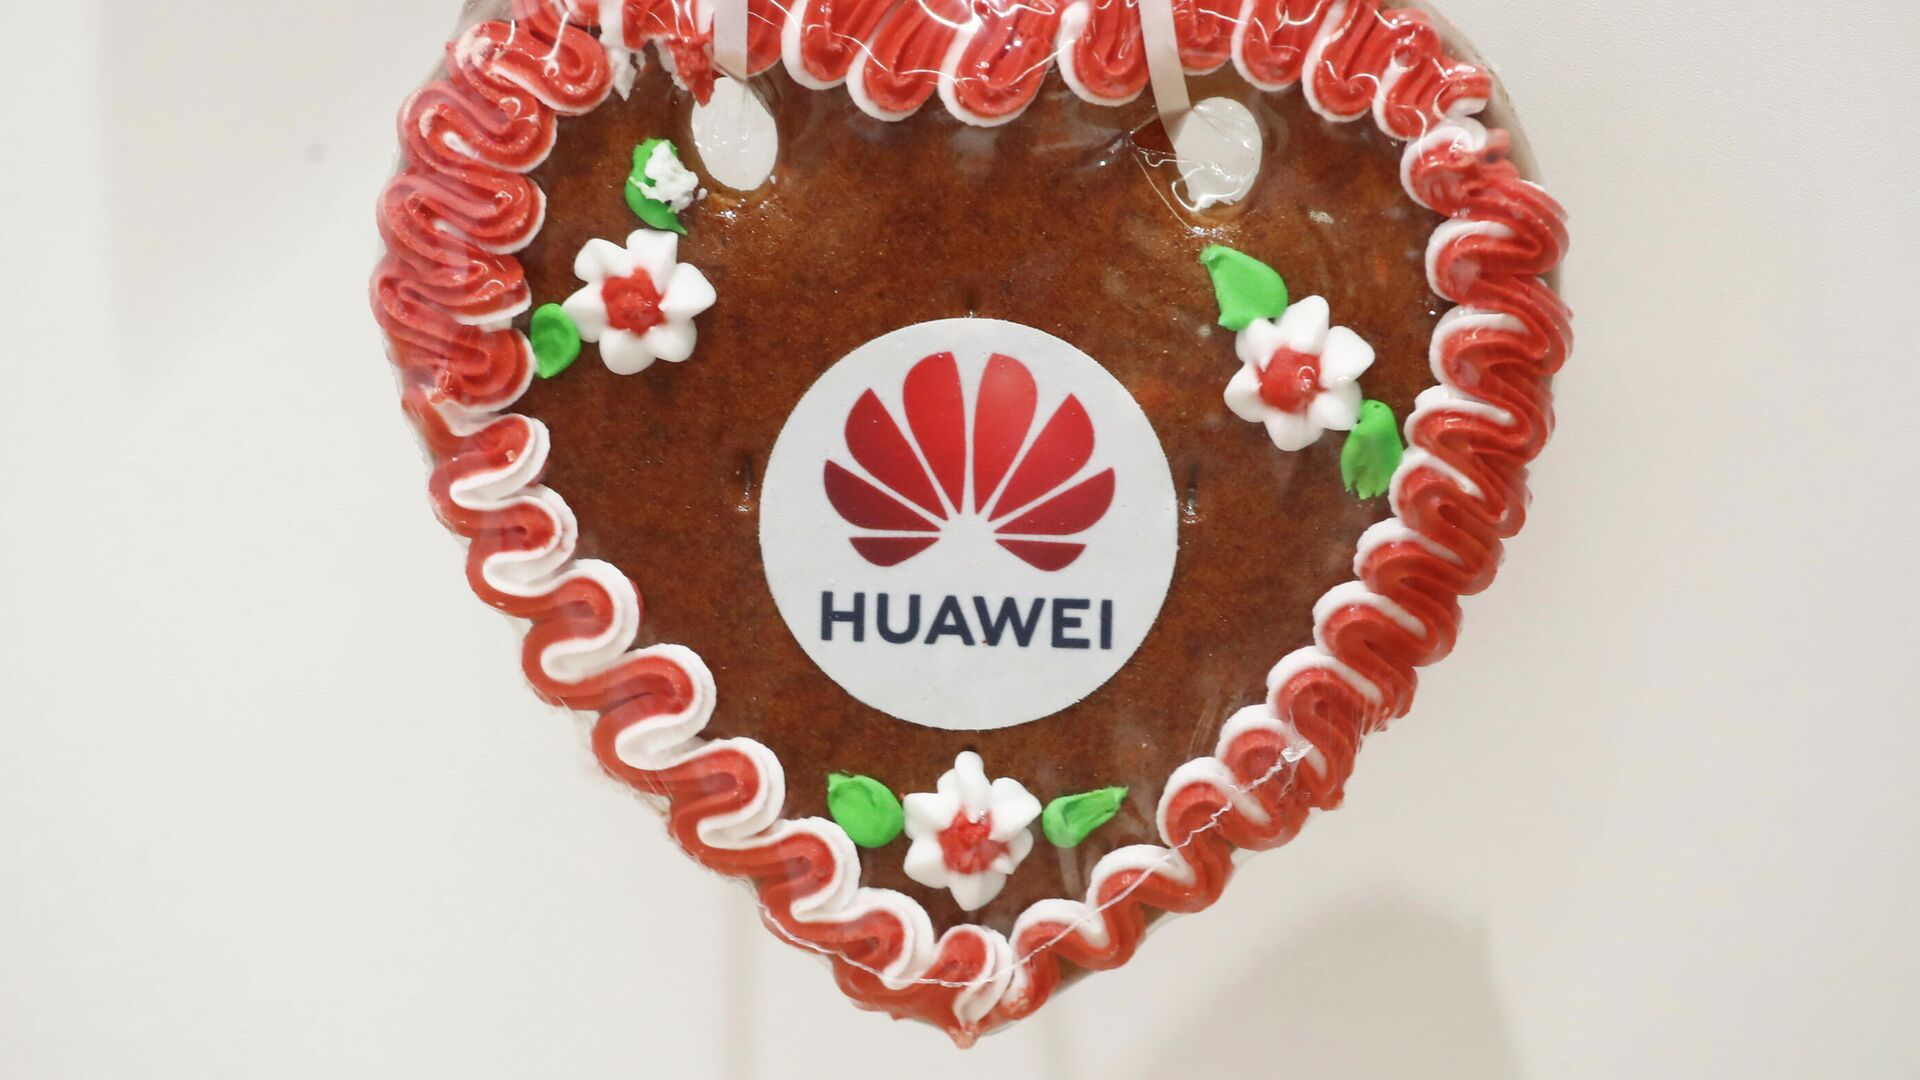 A gingerbread heart of Chinese IT giant HUAWEI is pictured at a two-day party convention of Bavaria's Christian Social Union party (CSU) in Nuremberg, Germany, September 11, 2021. - Sputnik International, 1920, 15.09.2021